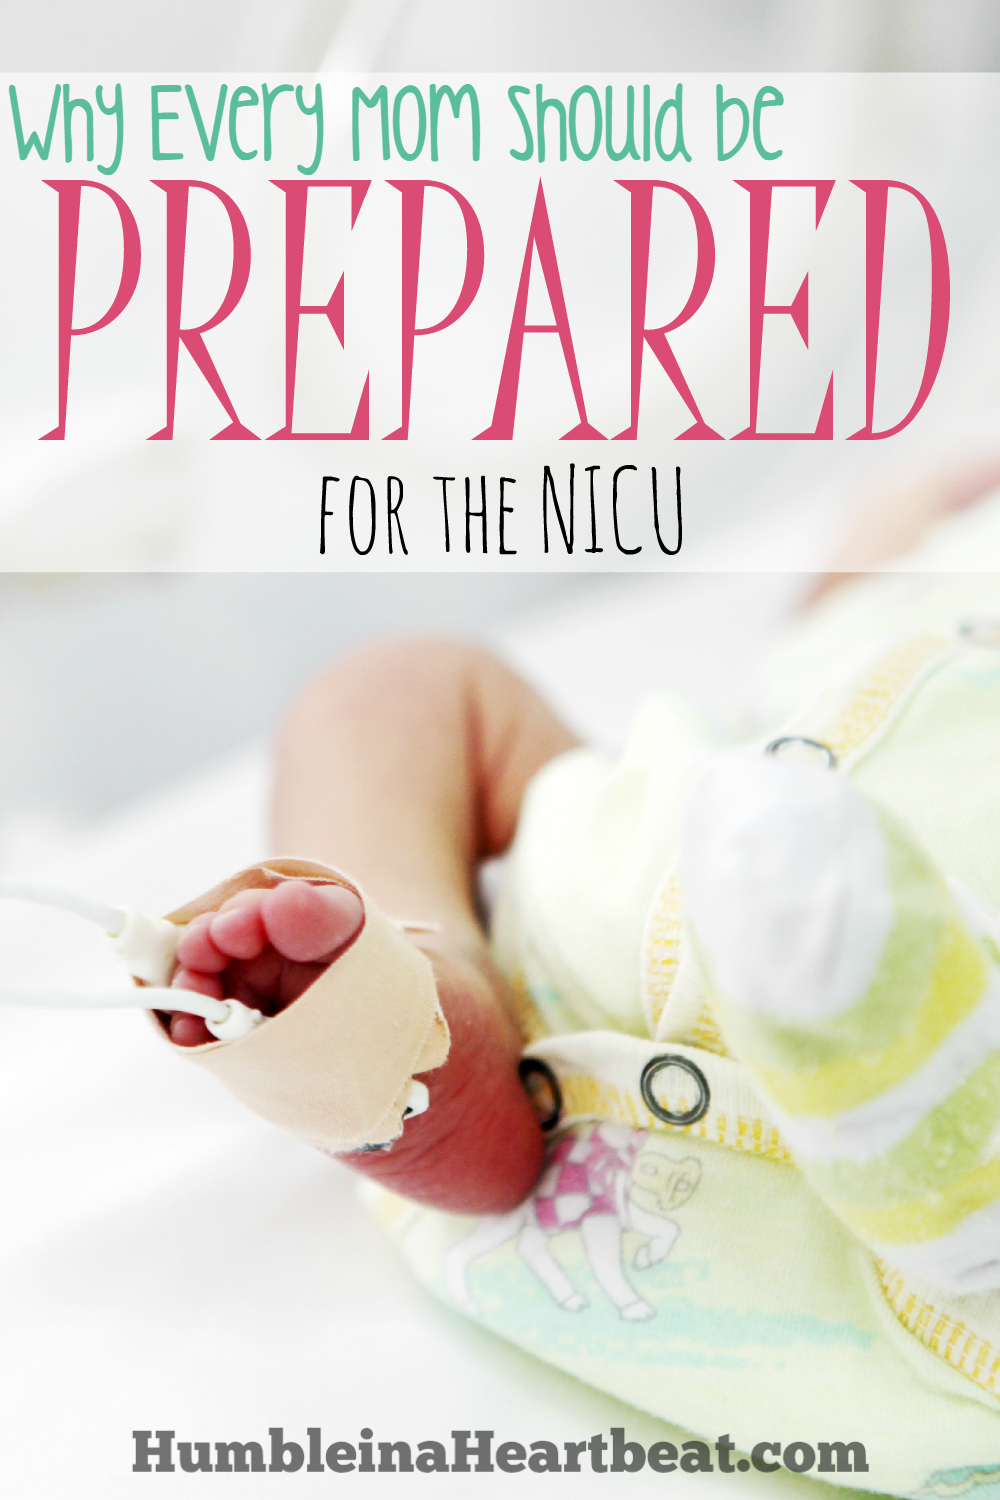 Babies can go to the NICU soon after birth for a myriad of reasons. Even if you don't think your baby will need to go there, you should at least prepare for it.